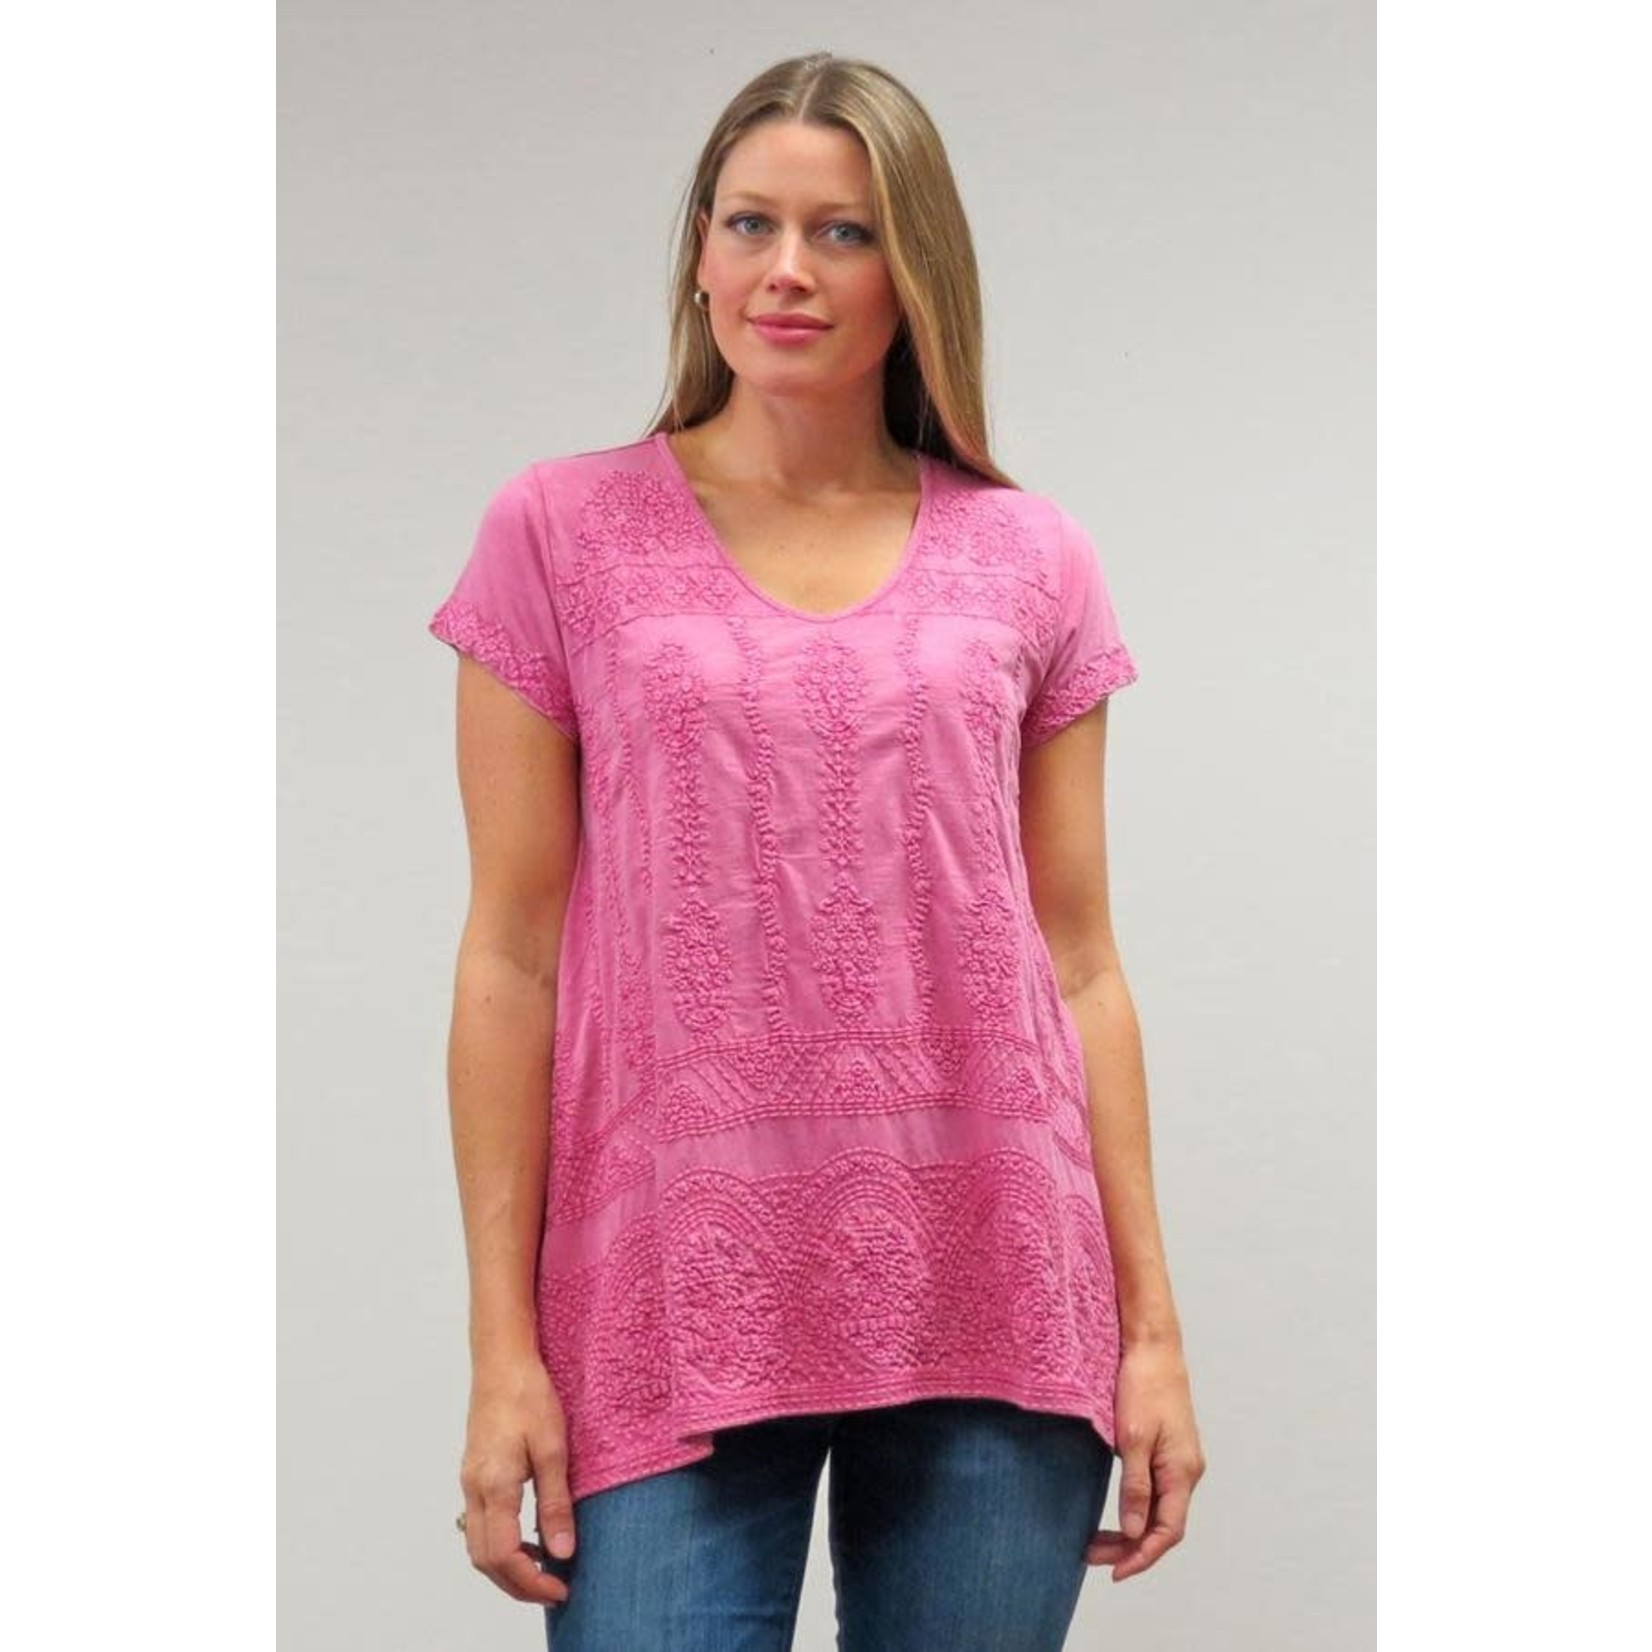 Caite Kiana Red Violet Tonal Embroidered  Top